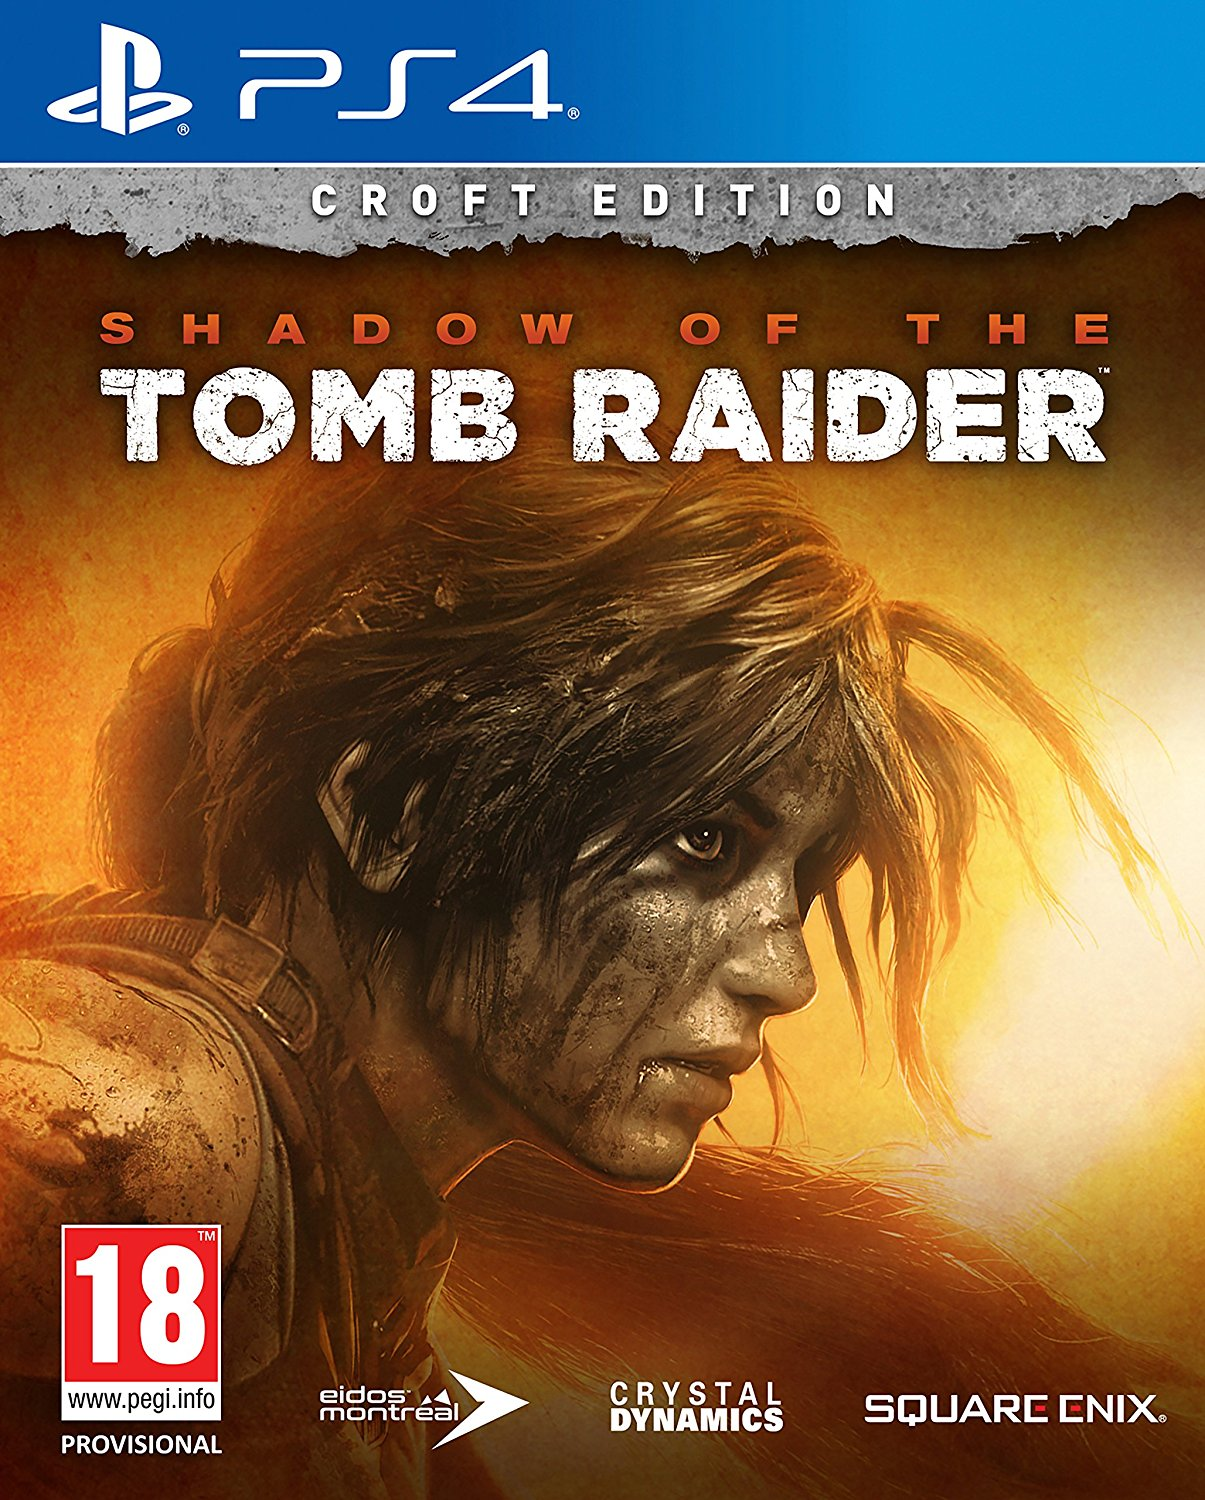 Shadow Of The Tomb Raider: Croft Edition (PS4) imagen